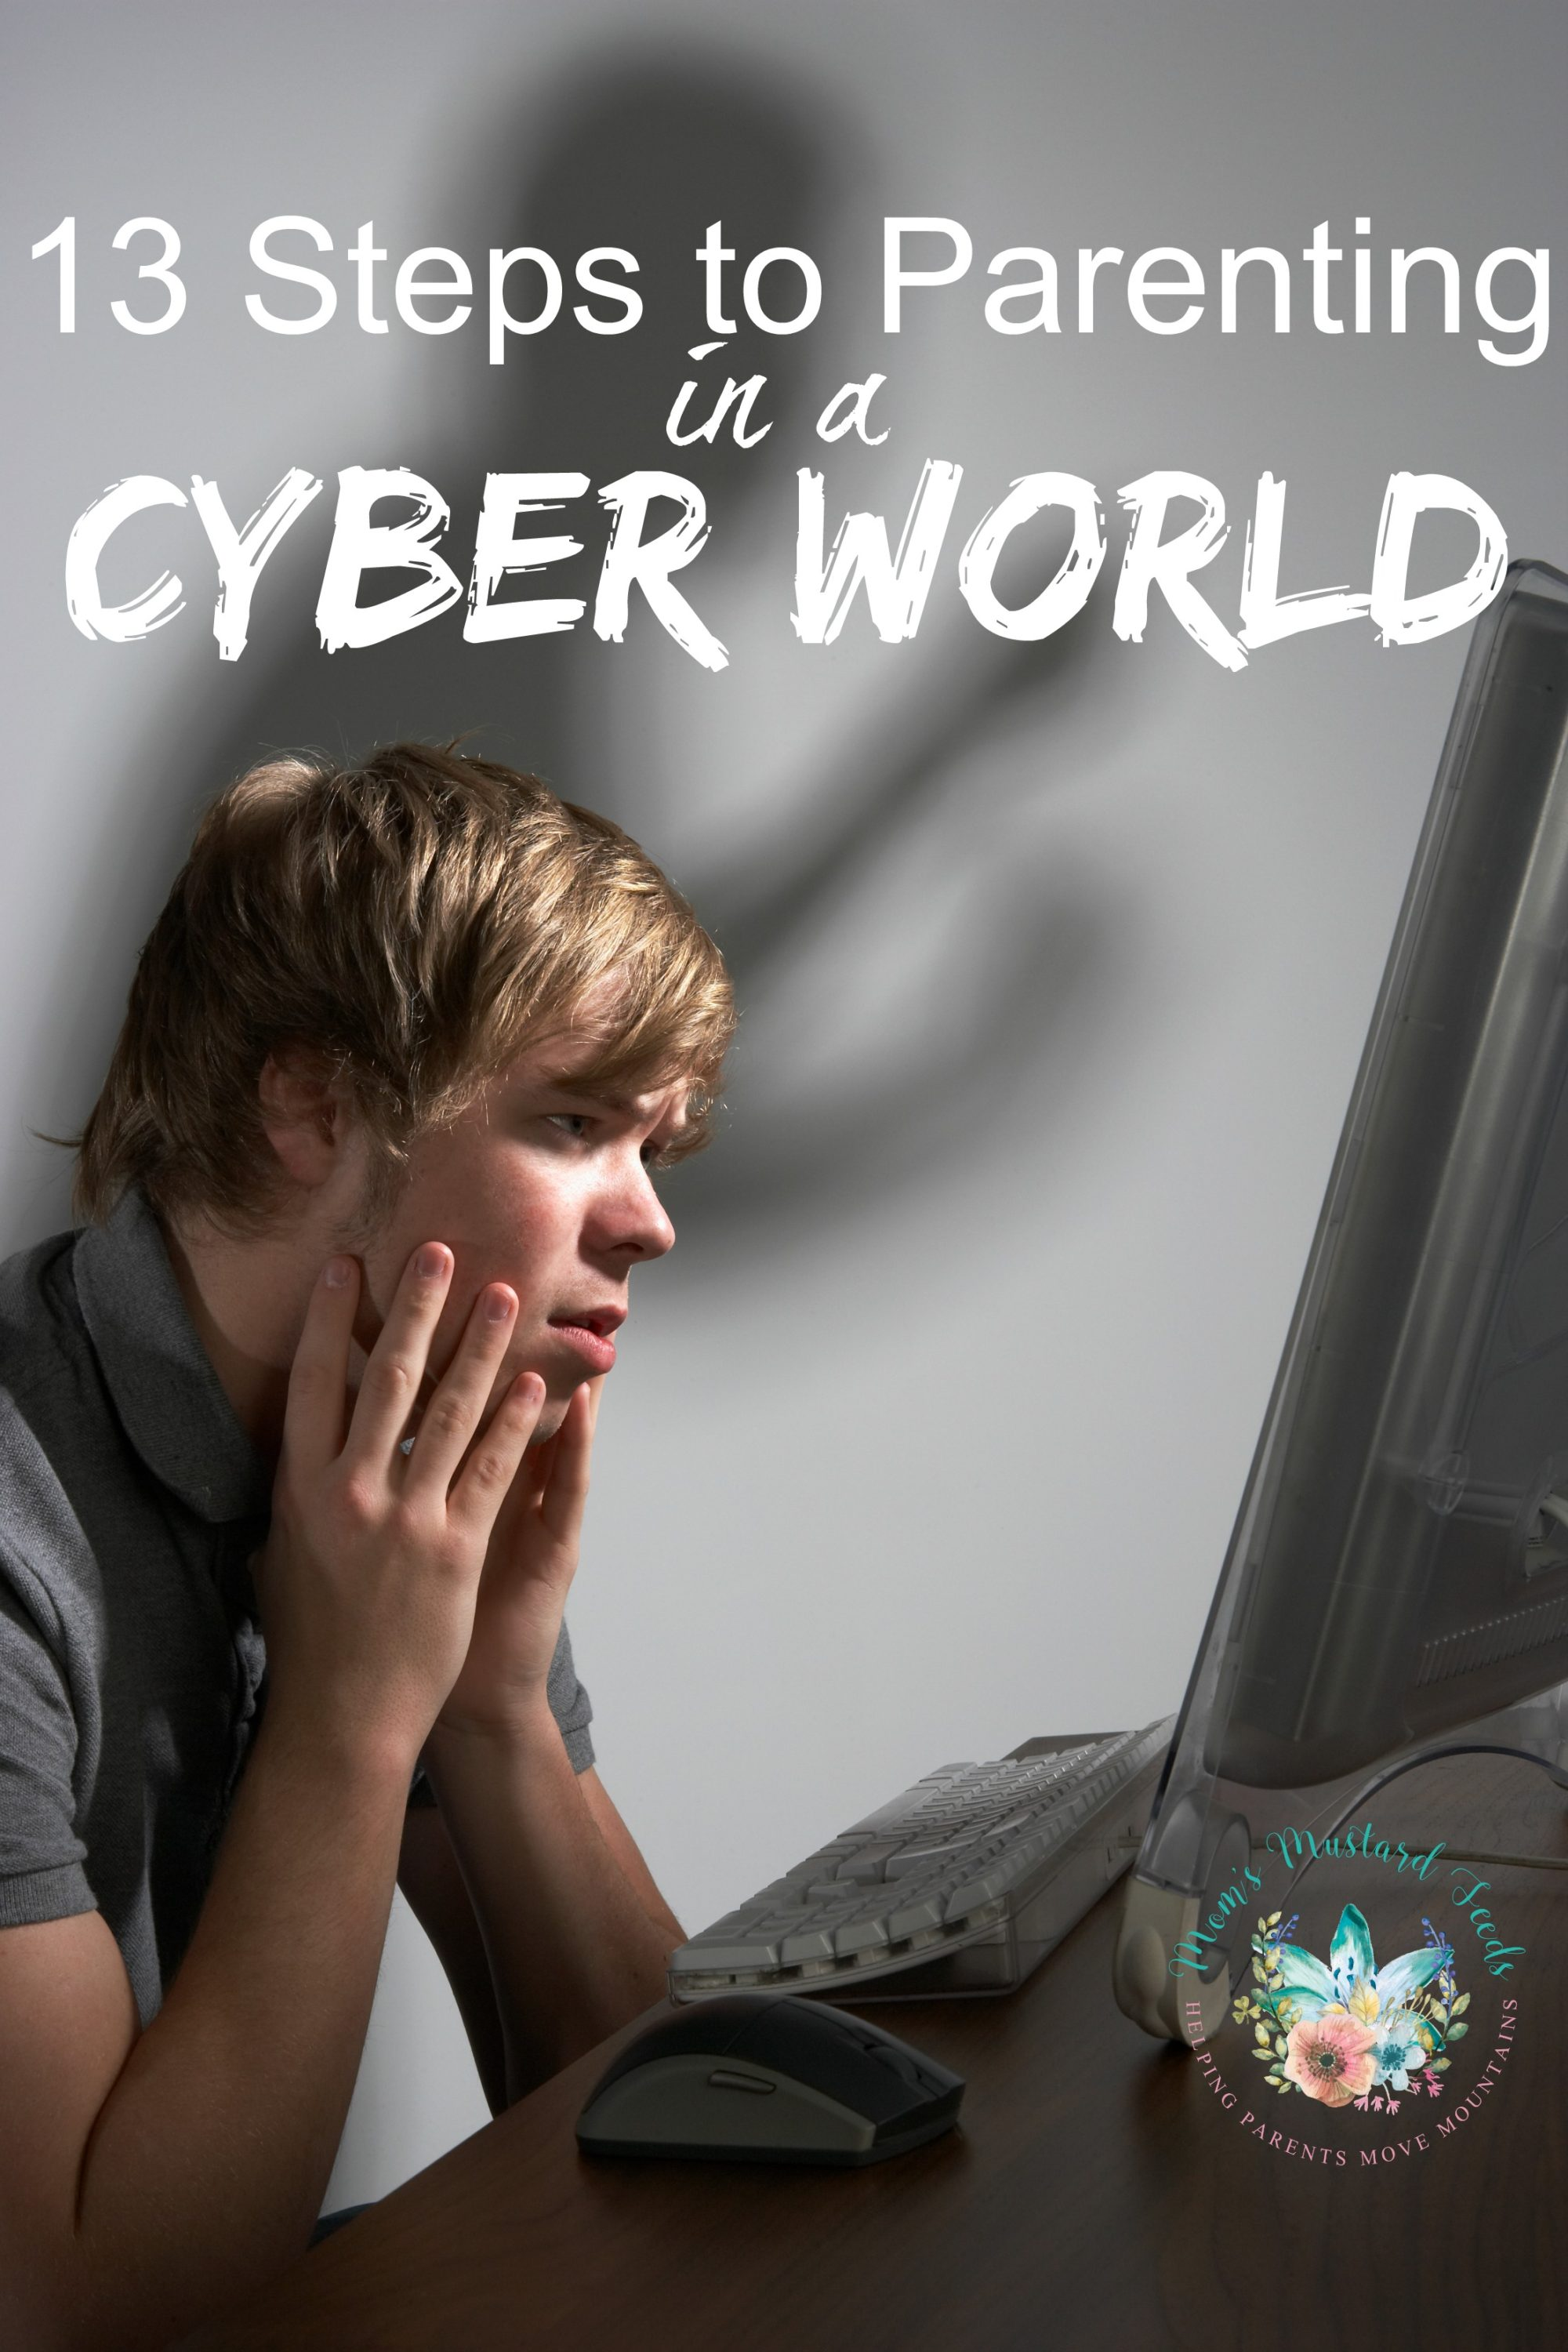 The Cyber world is changing parenting... this is what you need to know.